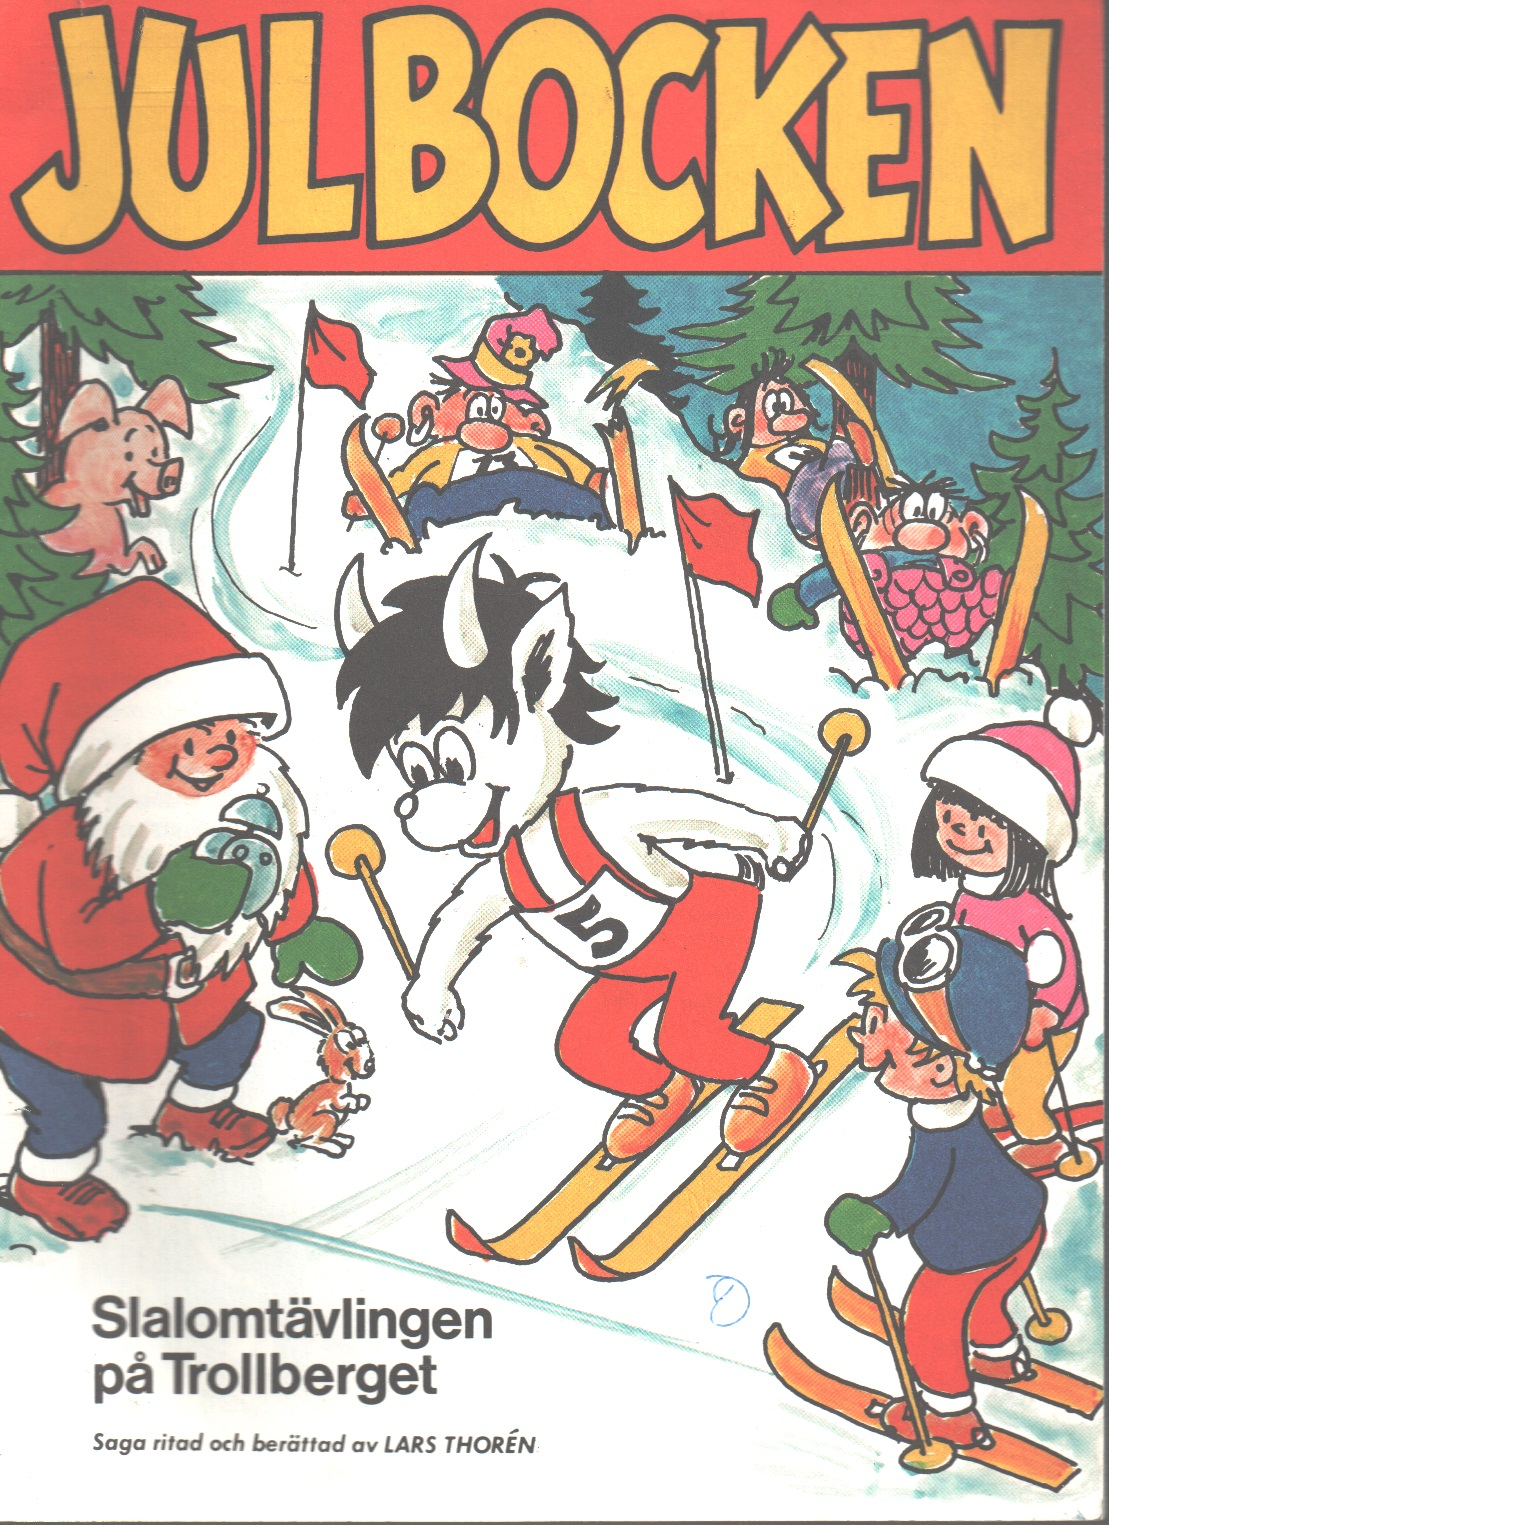 Julbocken - Thorén, Lars